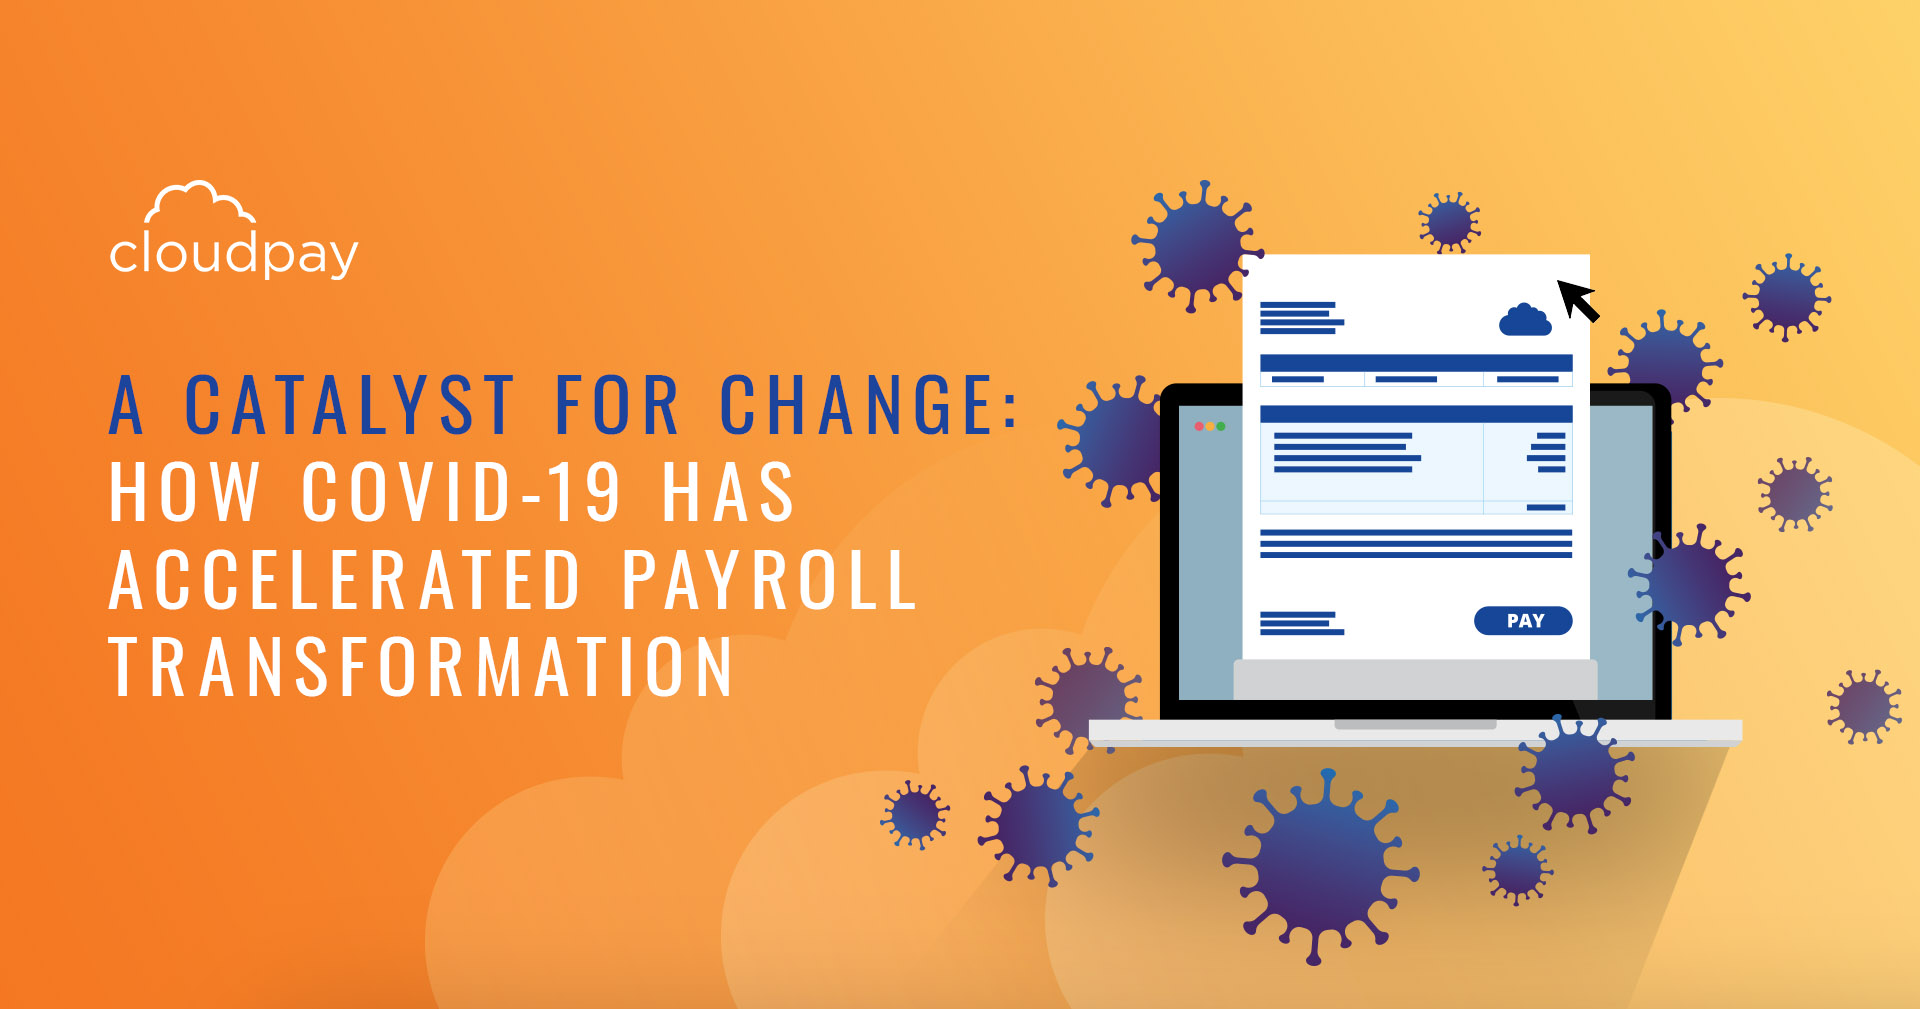 A catalyst for change: How COVID-19 has accelerated payroll transformation